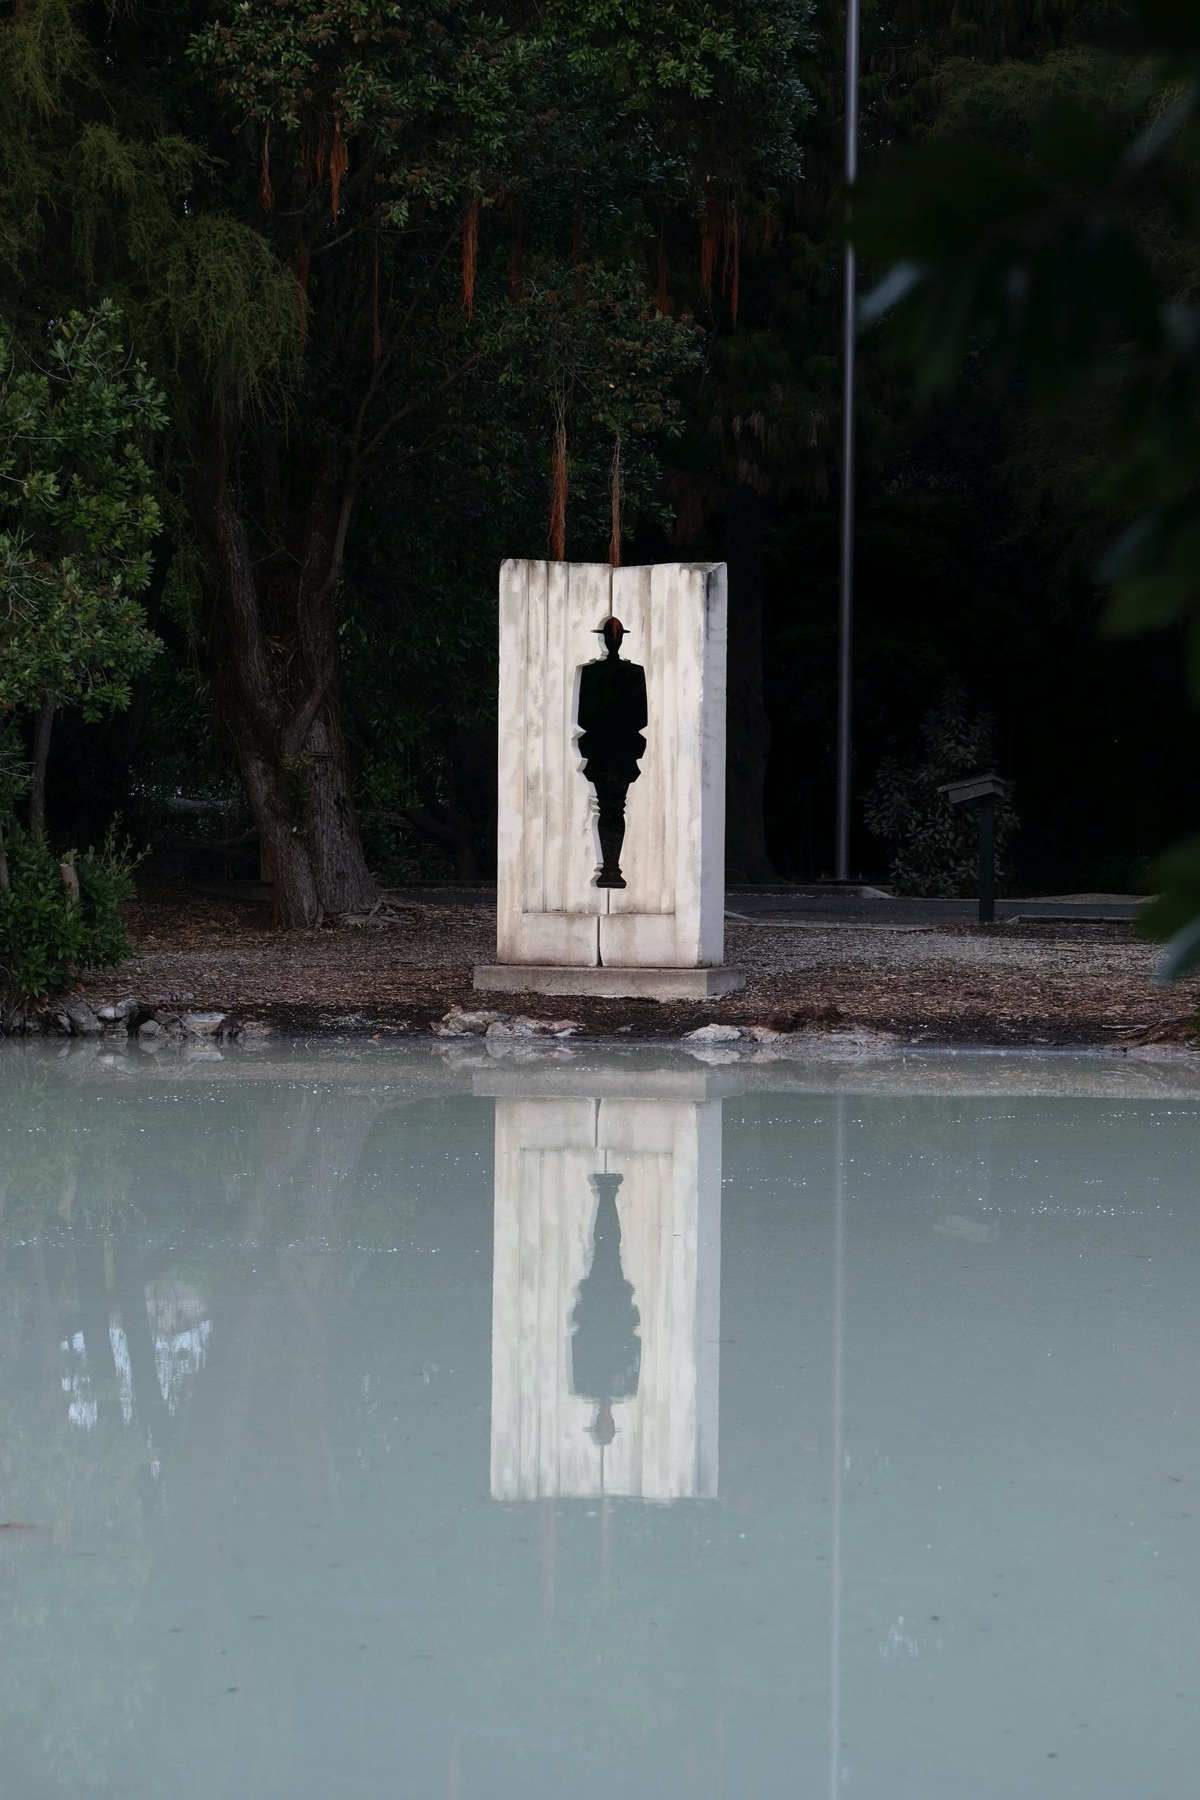 White lake, white stone slab with the black figure of a soldier cut out of it, reflected in the lake.